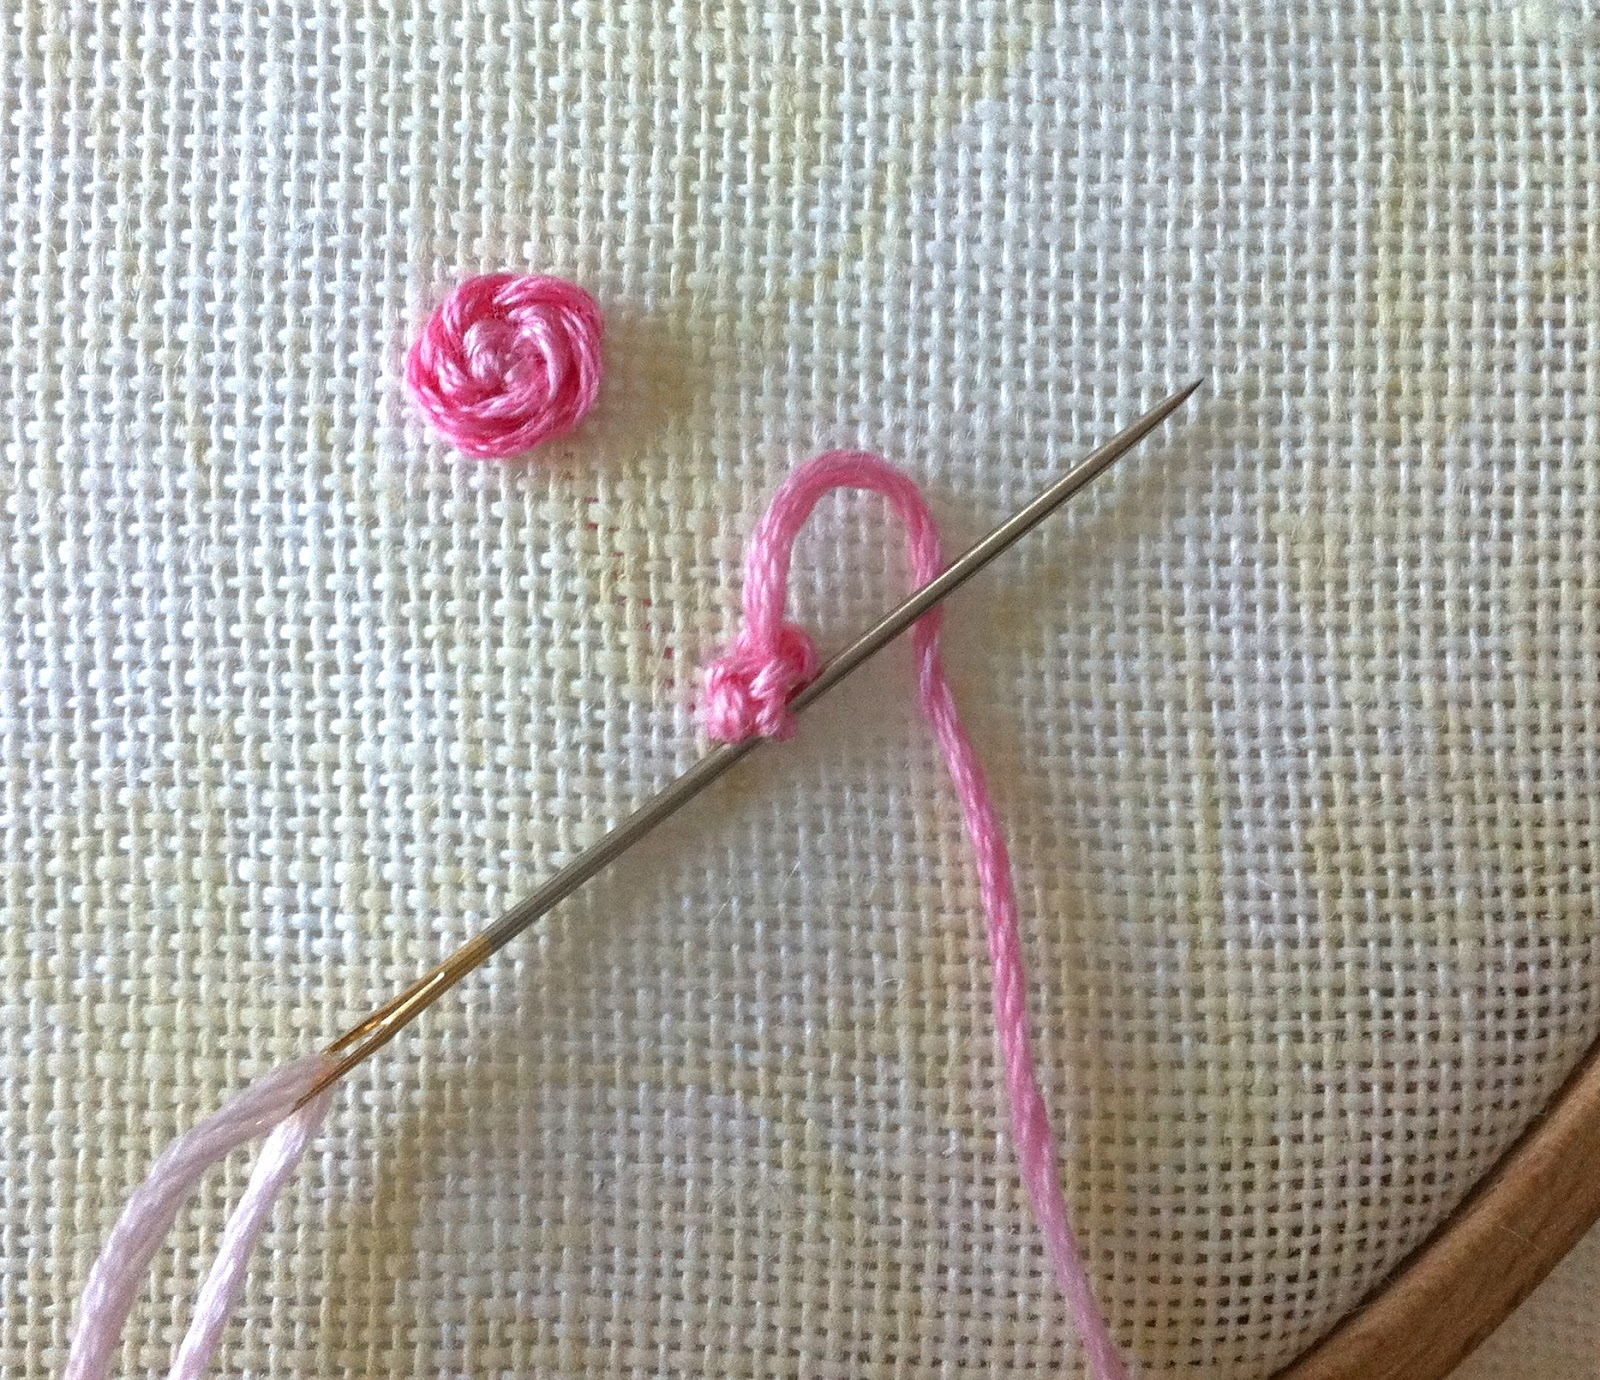 Humming Needles Stem Stitch Rose With Knotted Center